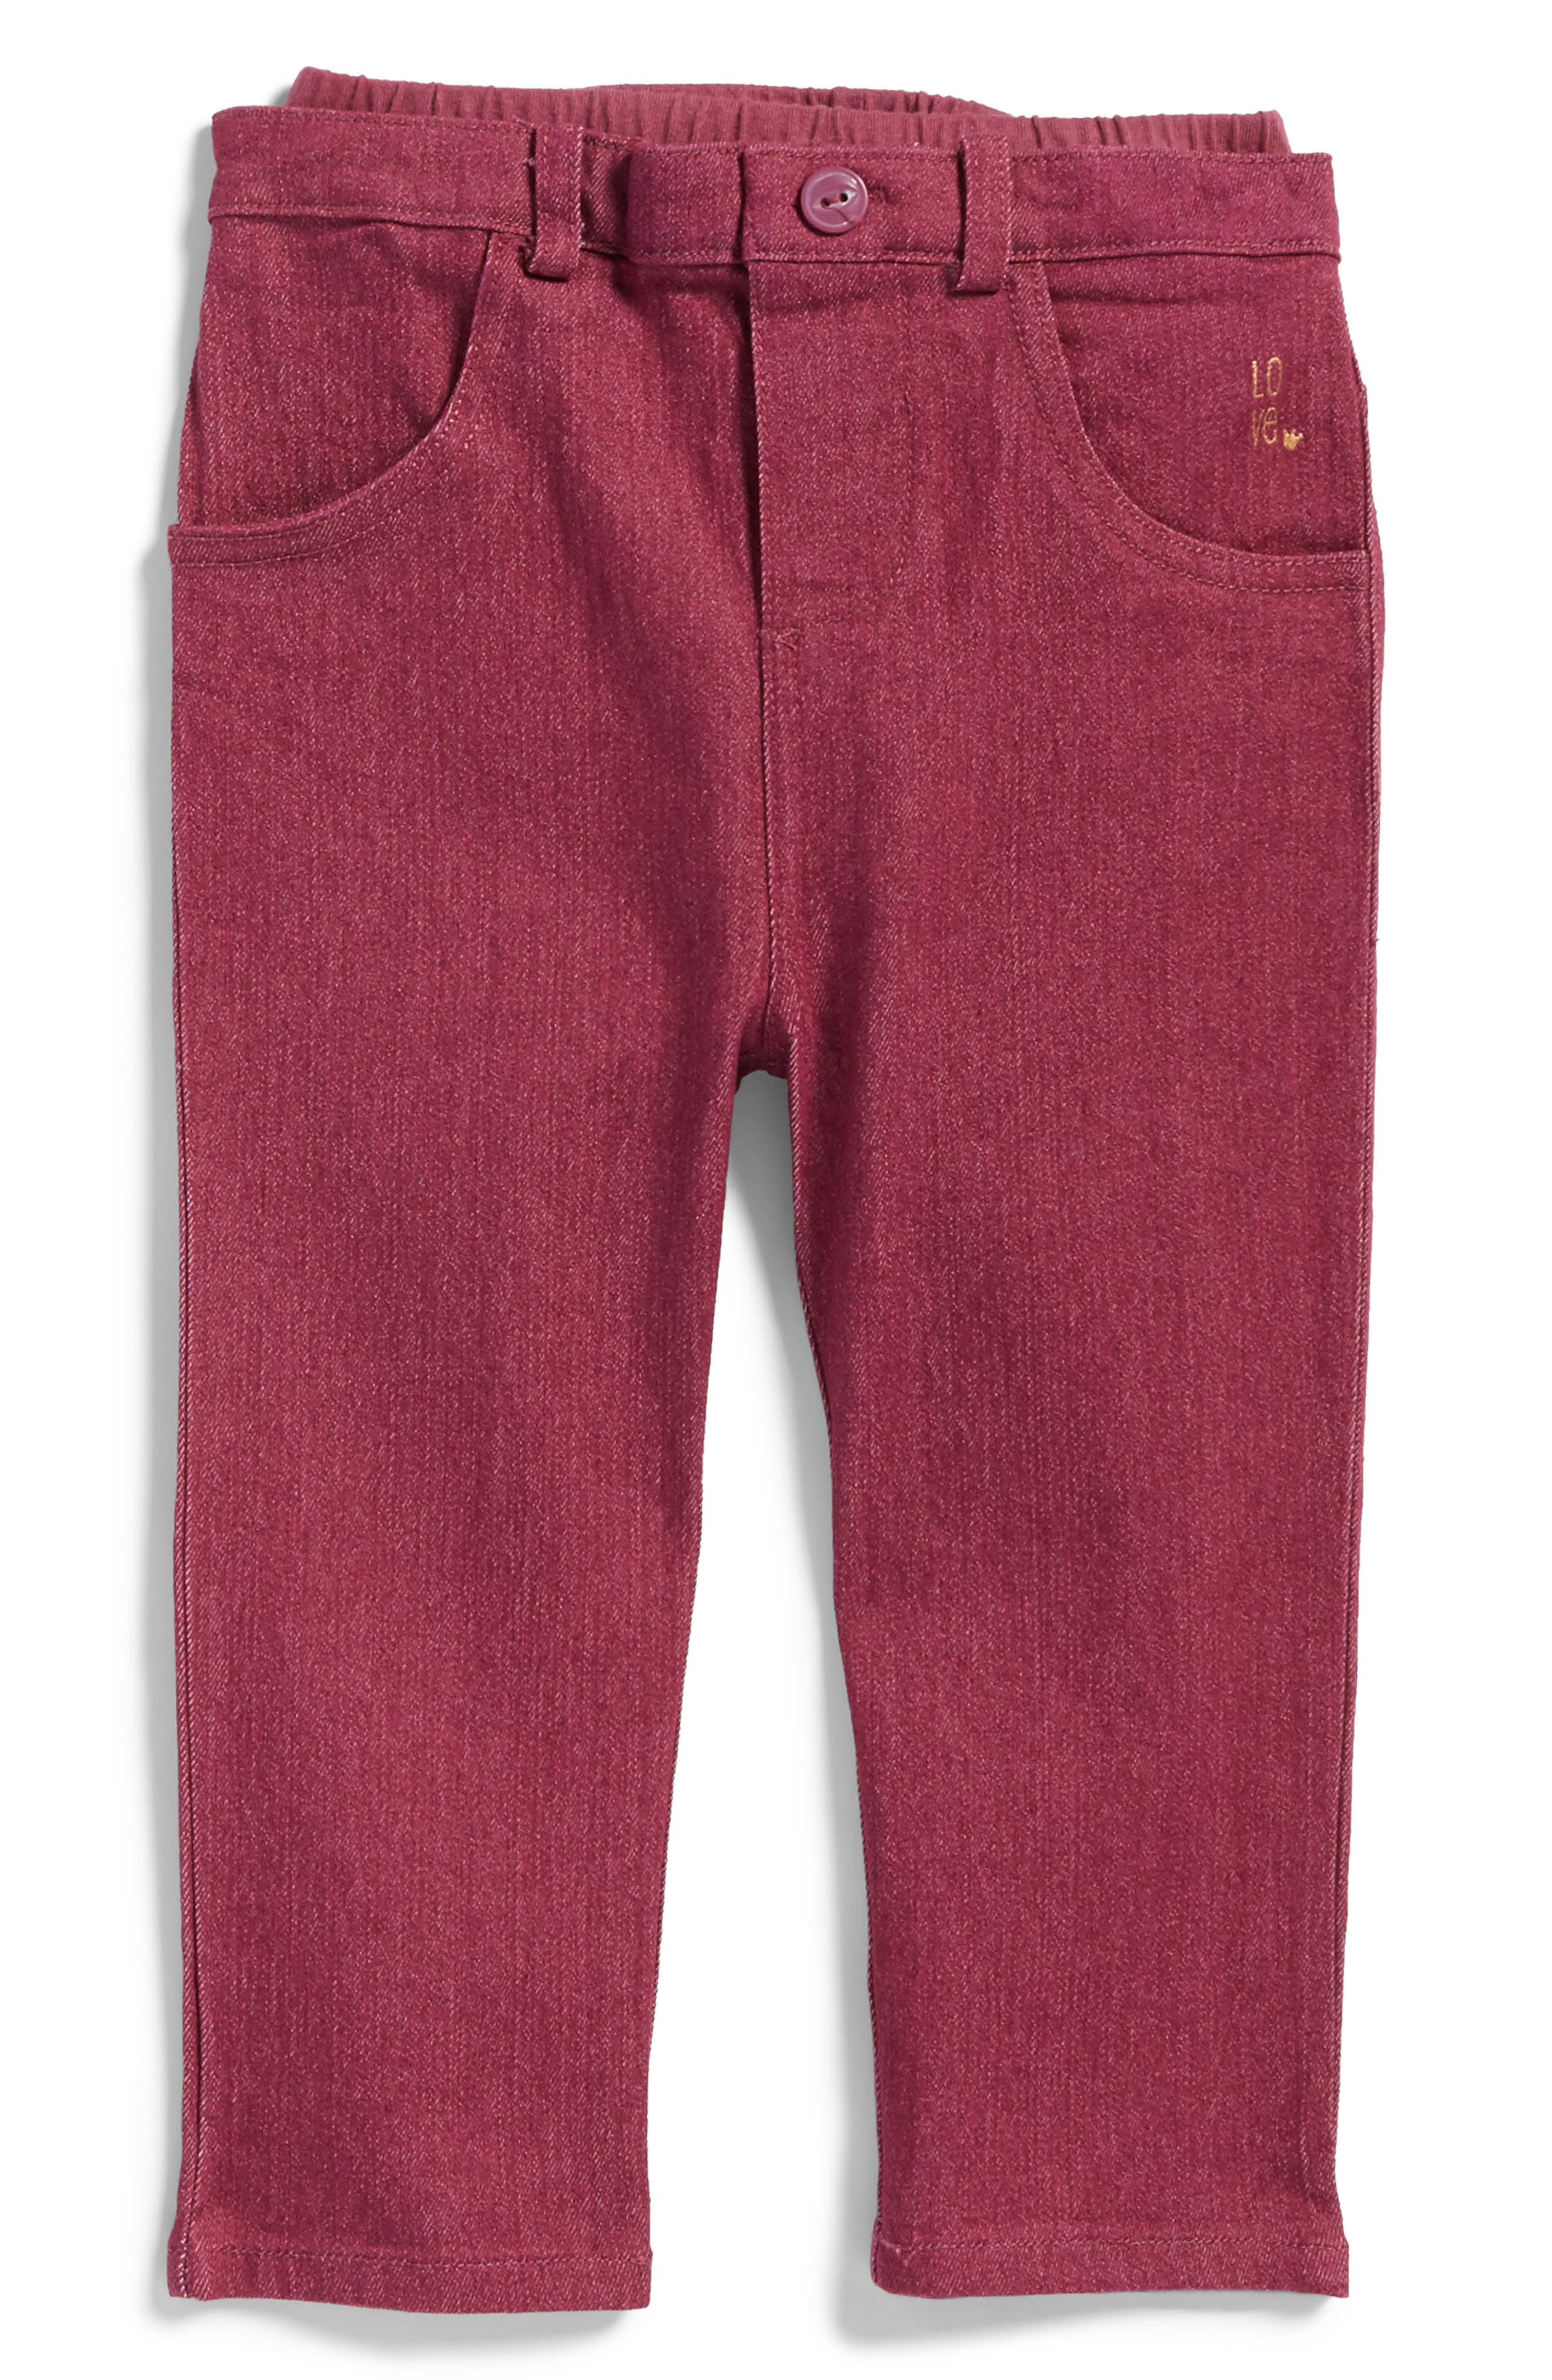 Alternate Image 1 Selected - Robeez® Soft Jeans (Baby Girls)